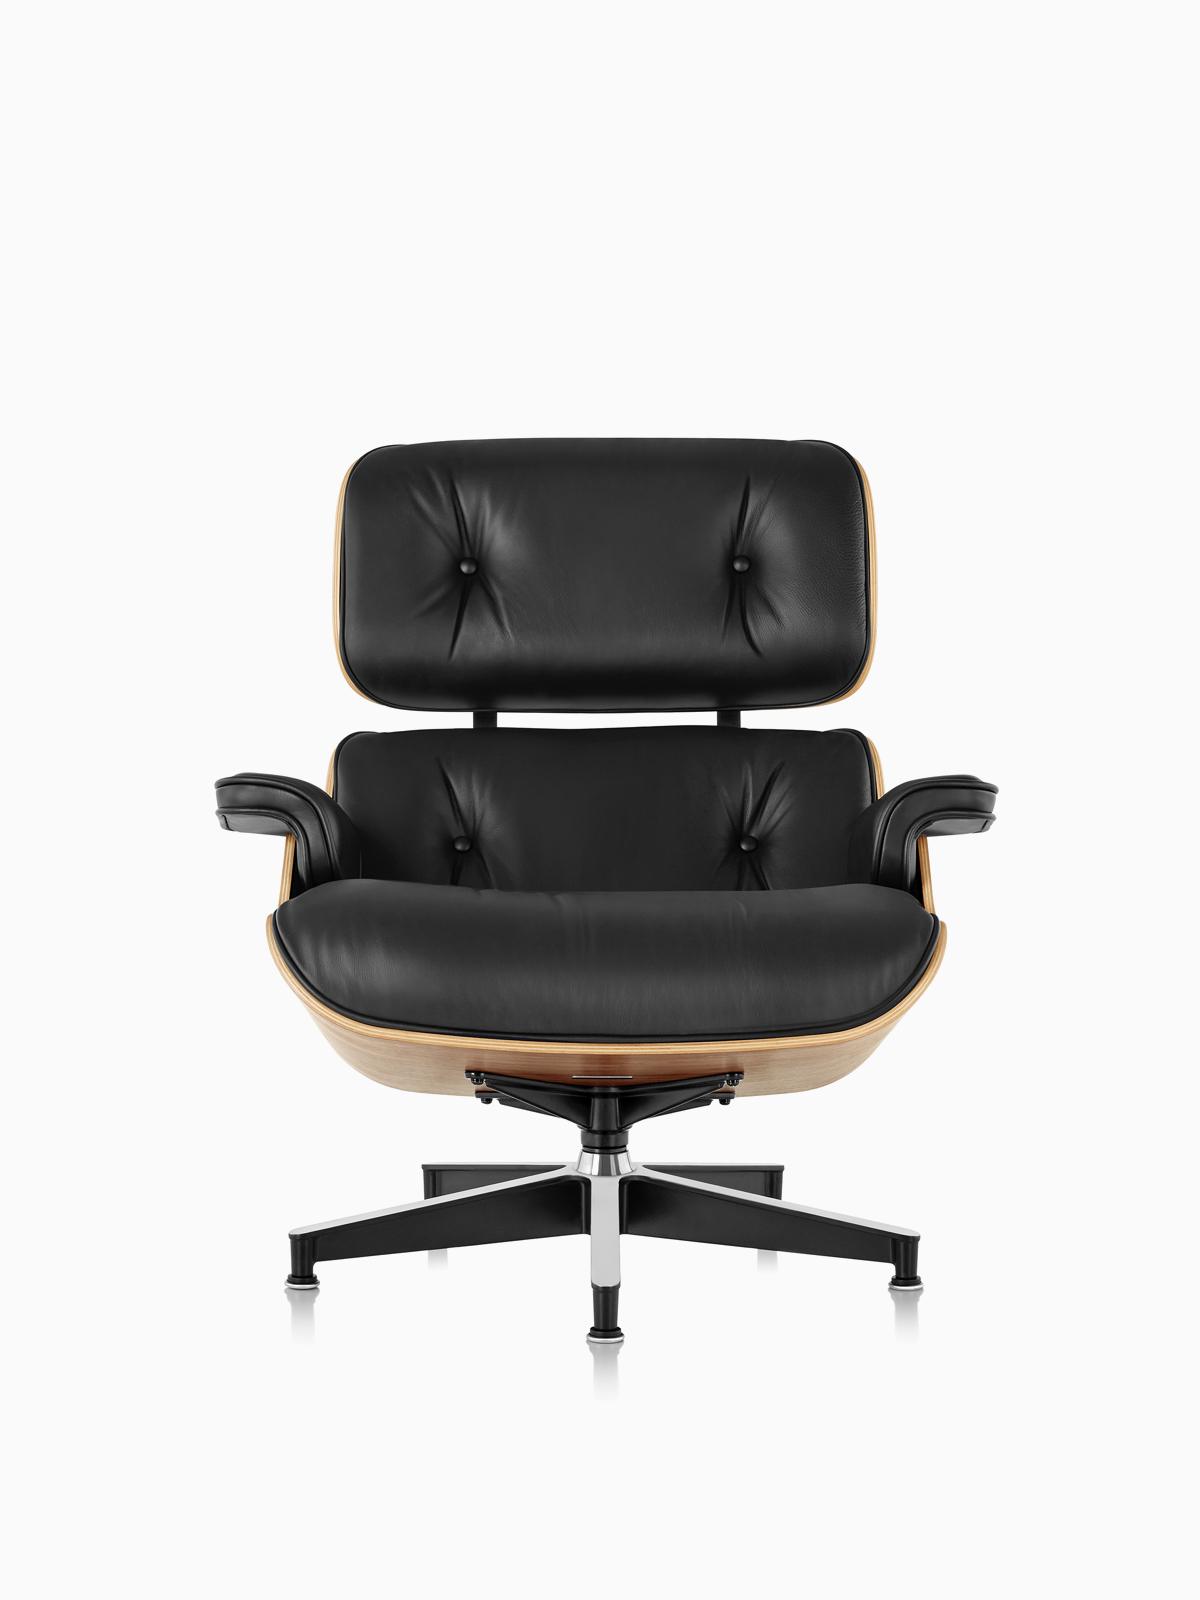 office lounge chair and ottoman gaming chairs with speakers nelson basic cabinet series residence living application